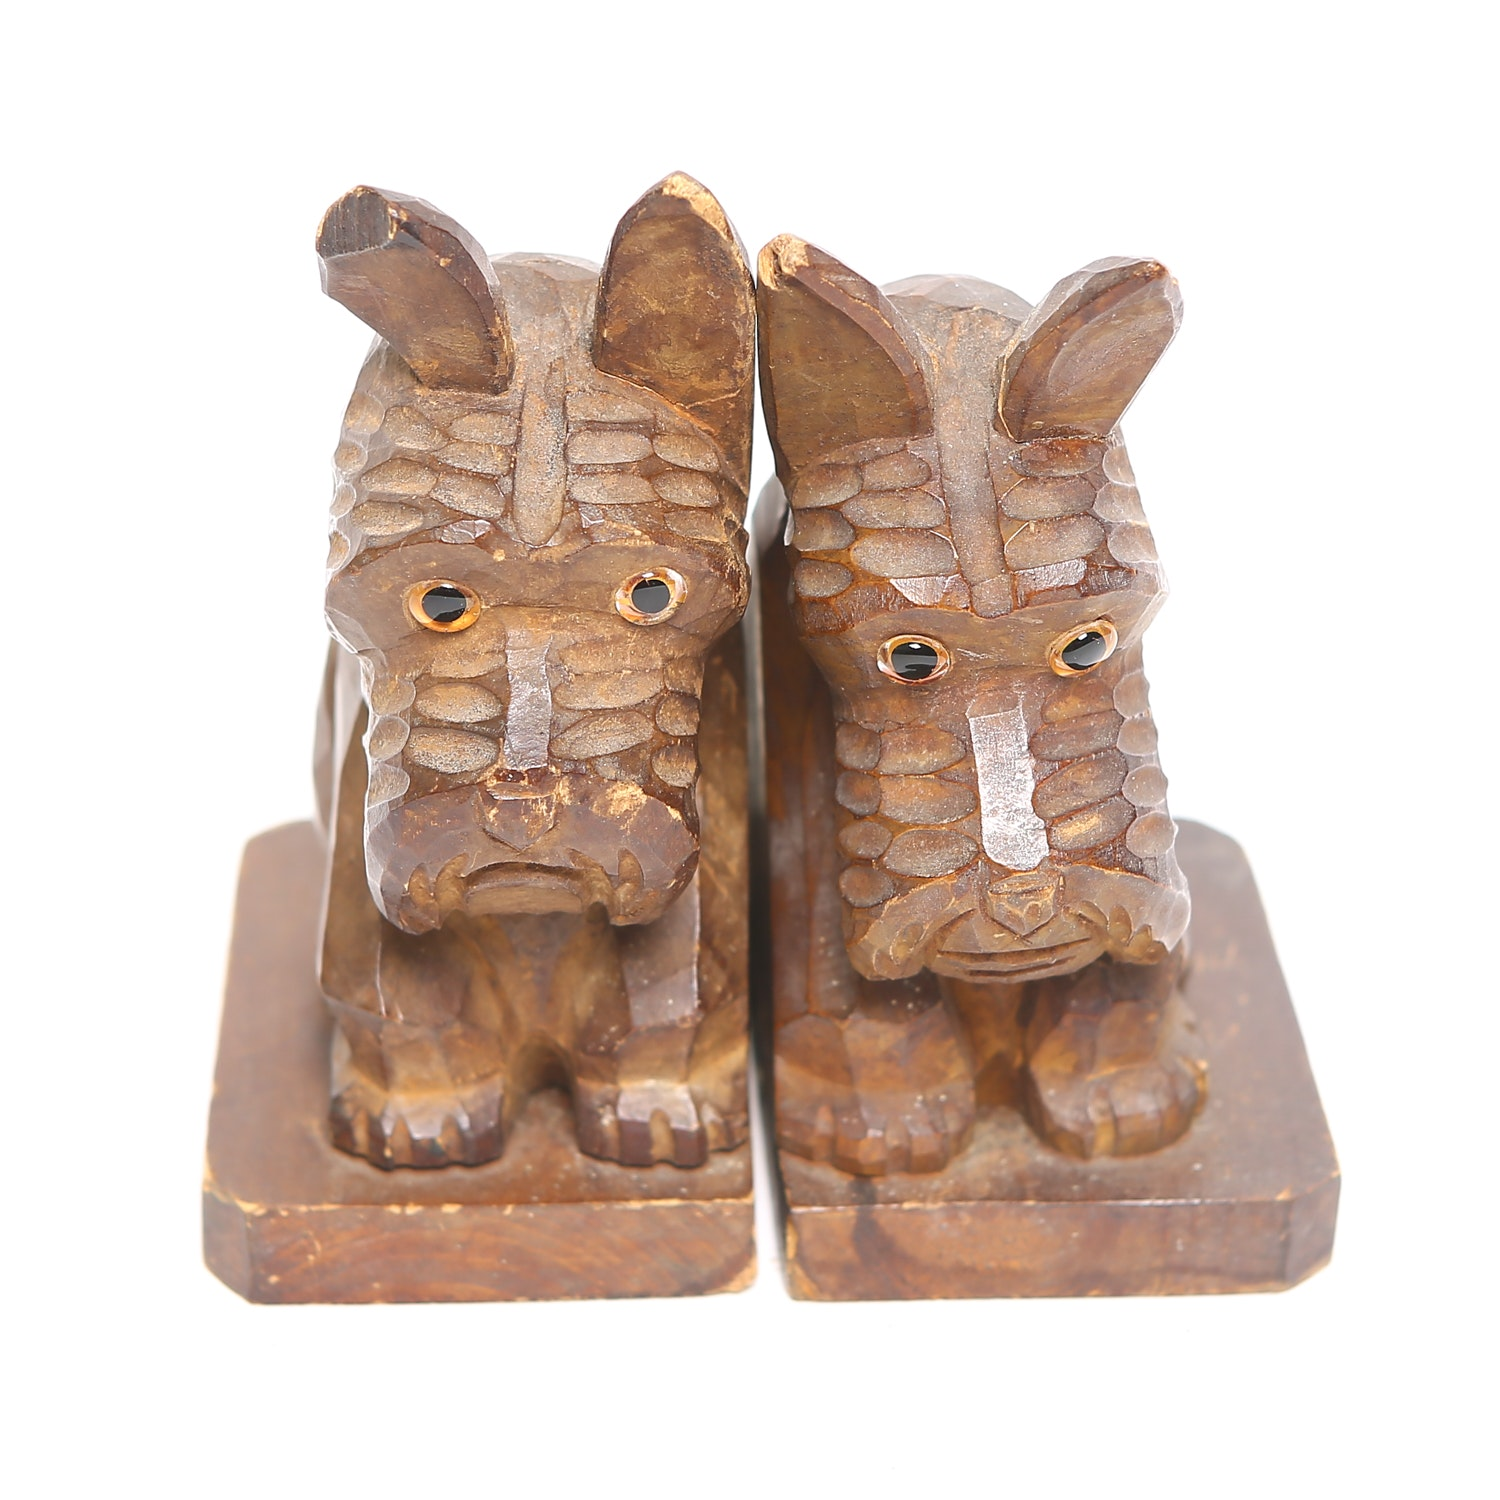 Hand Carved Wooden Schnauzer Bookends